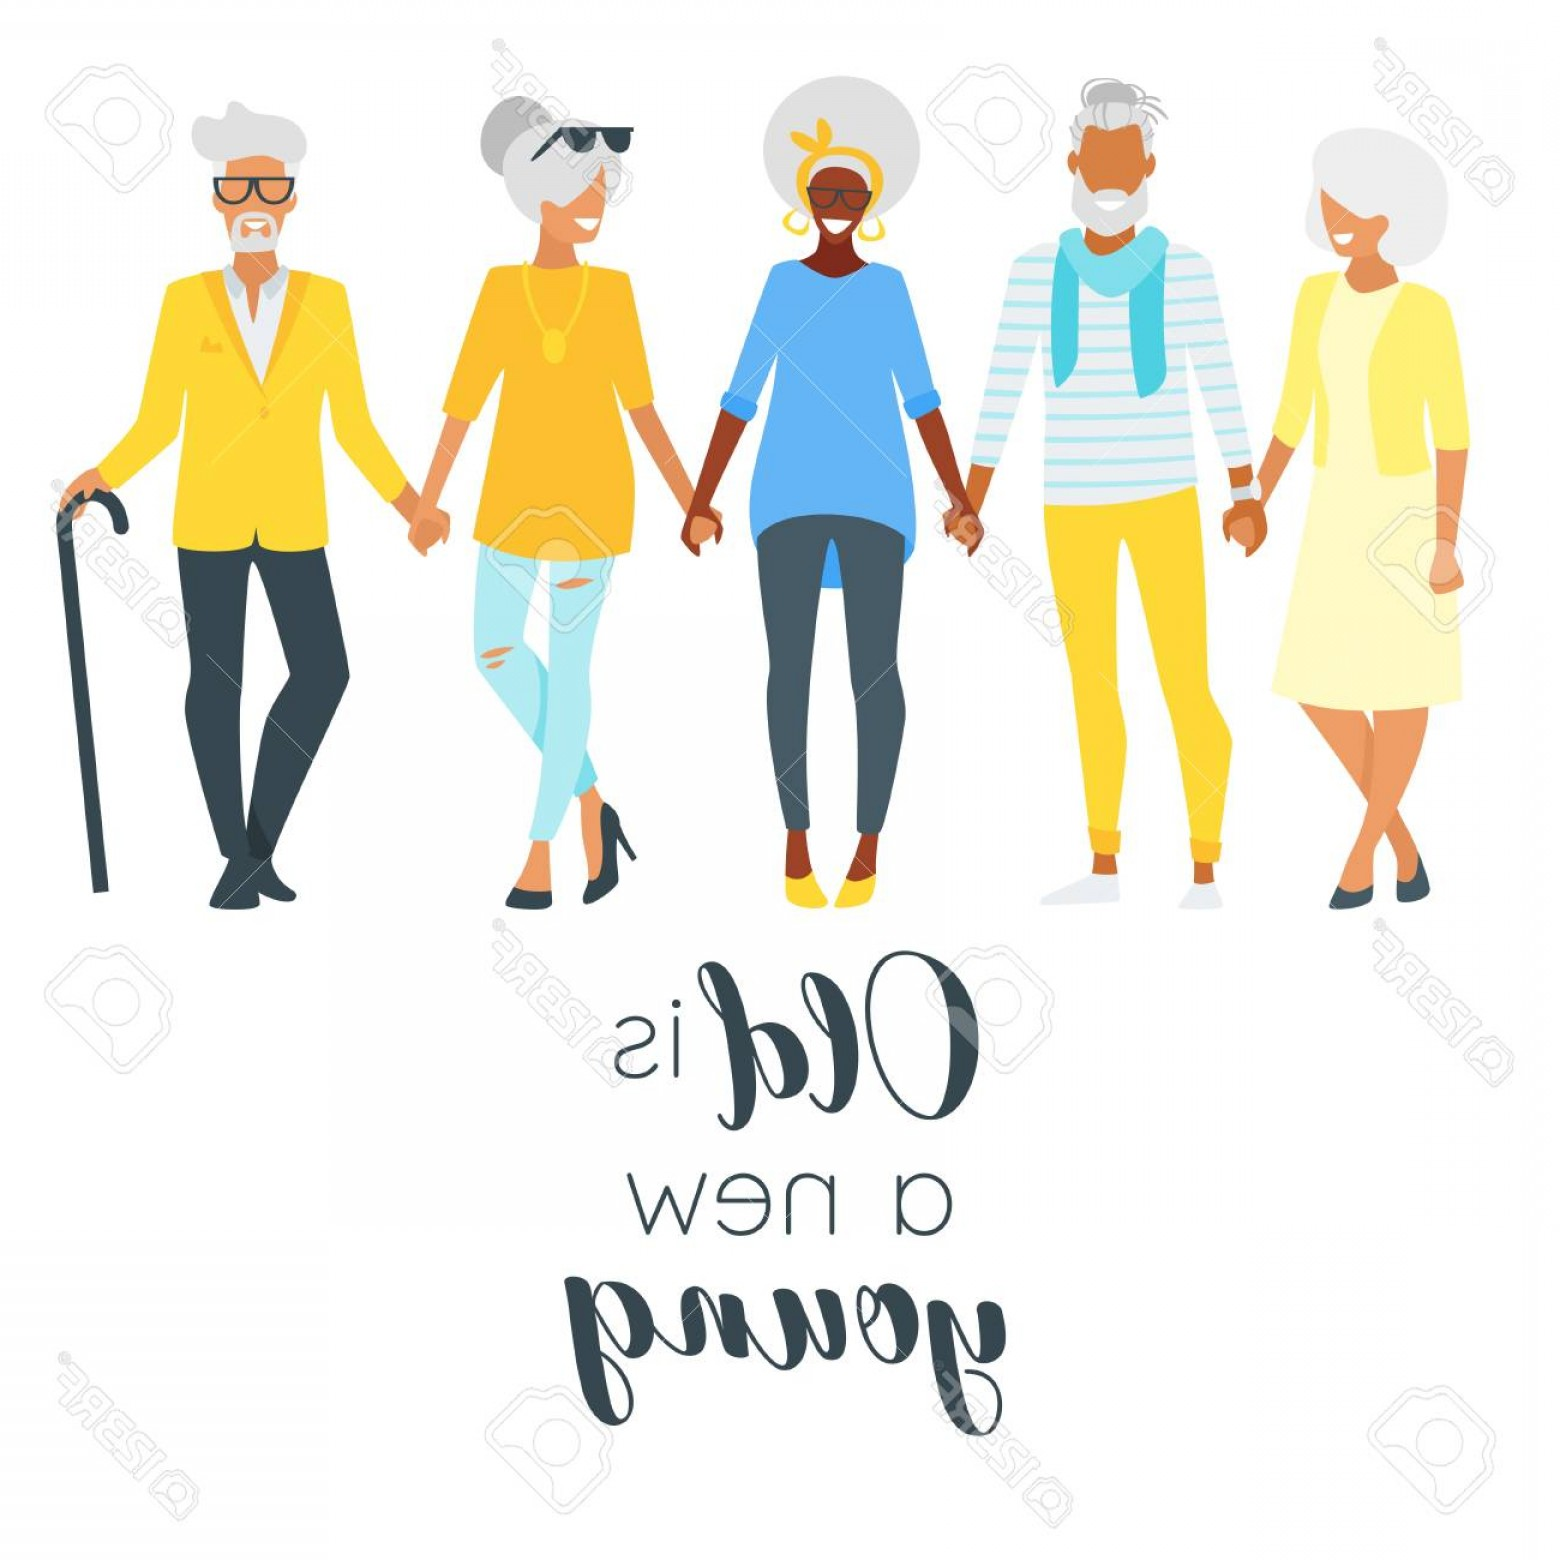 Happy Elderly Vector: Photostock Vector Vector Flat Style Illustration Of Happy Elderly Senior Man And Woman Standing In A Row Holding Hands